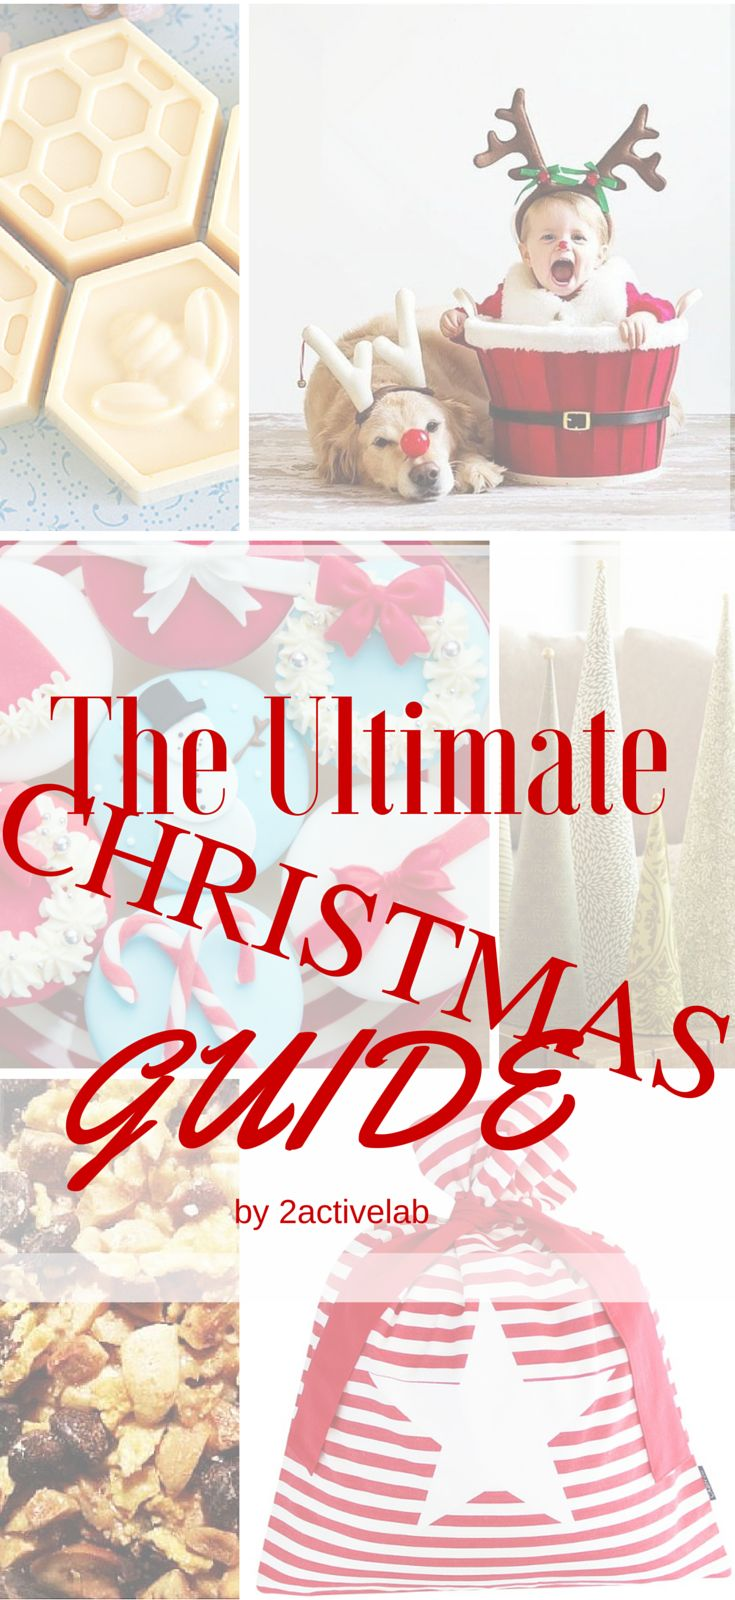 The Ultimate Christmas Holiday Guide -you will find everything you need to laugh, have fun , stay healthy and fit.Ideas of what to cook, diy gifts and many more so continue reading…. http://2activelab.com/the-best-christmas-guide-for-2015/ ‪#‎christmas‬ ‪#‎christmasgifts‬ ‪#‎gifts‬ ‪‬ ‪#‎holyspirit‬ ‪#‎mood‬ ‪#‎christmassmood‬ ‪